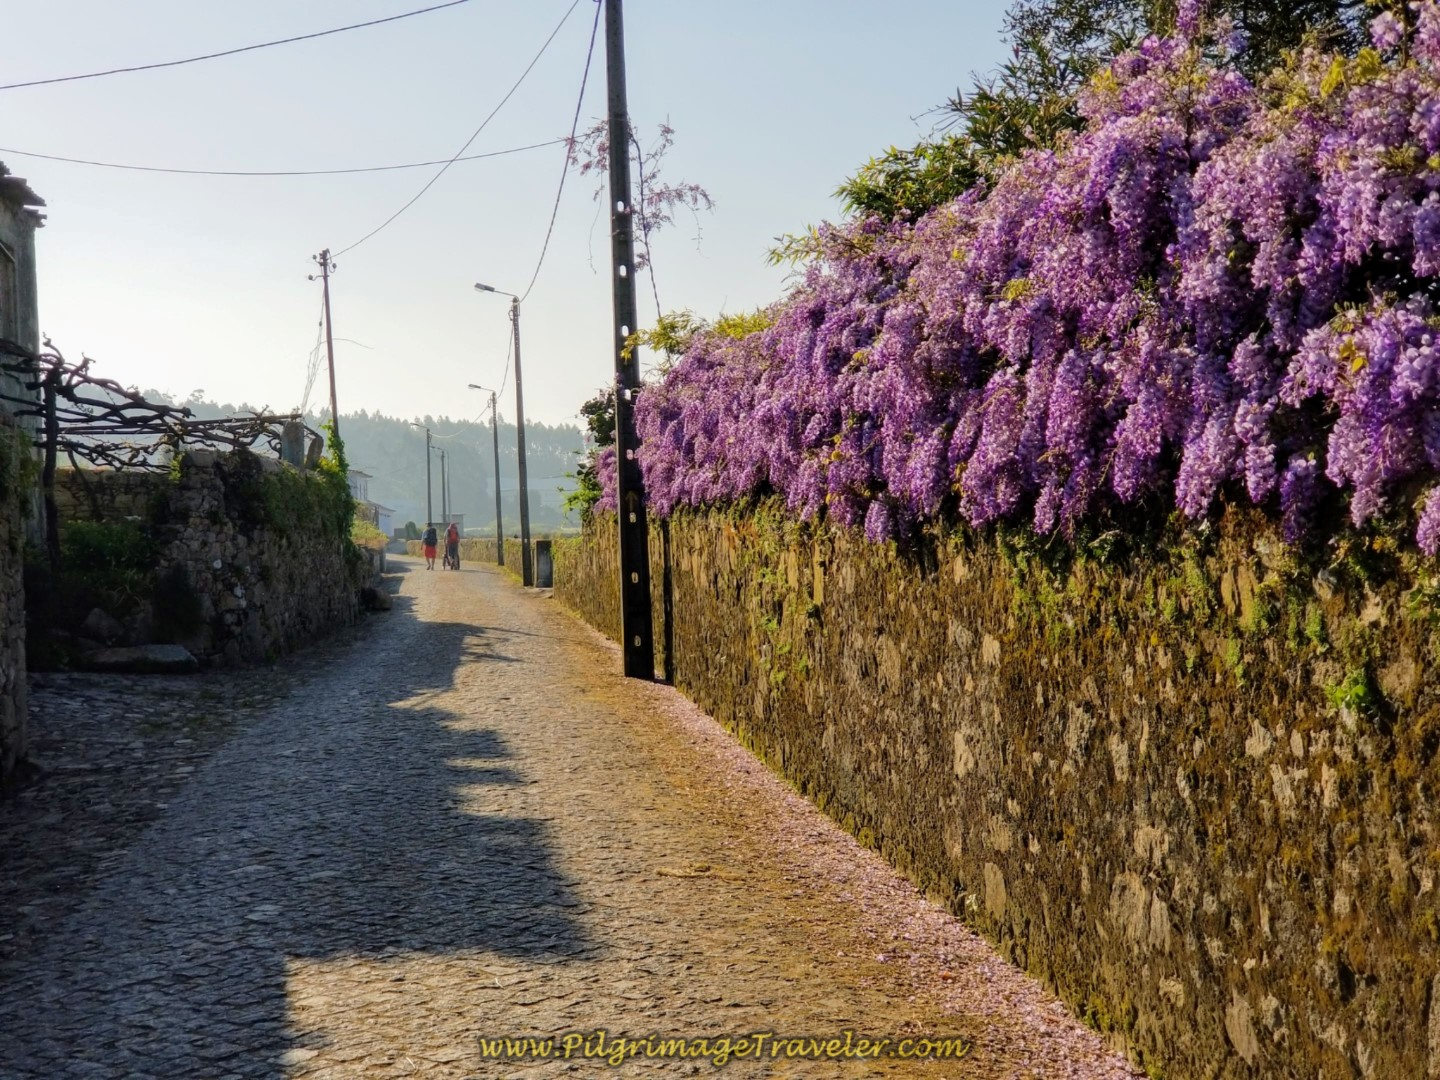 Lovely, Painful Cobblestone Roads with Abundant Wisteria  on day sixteen on the Central Route of the Camino Portugués